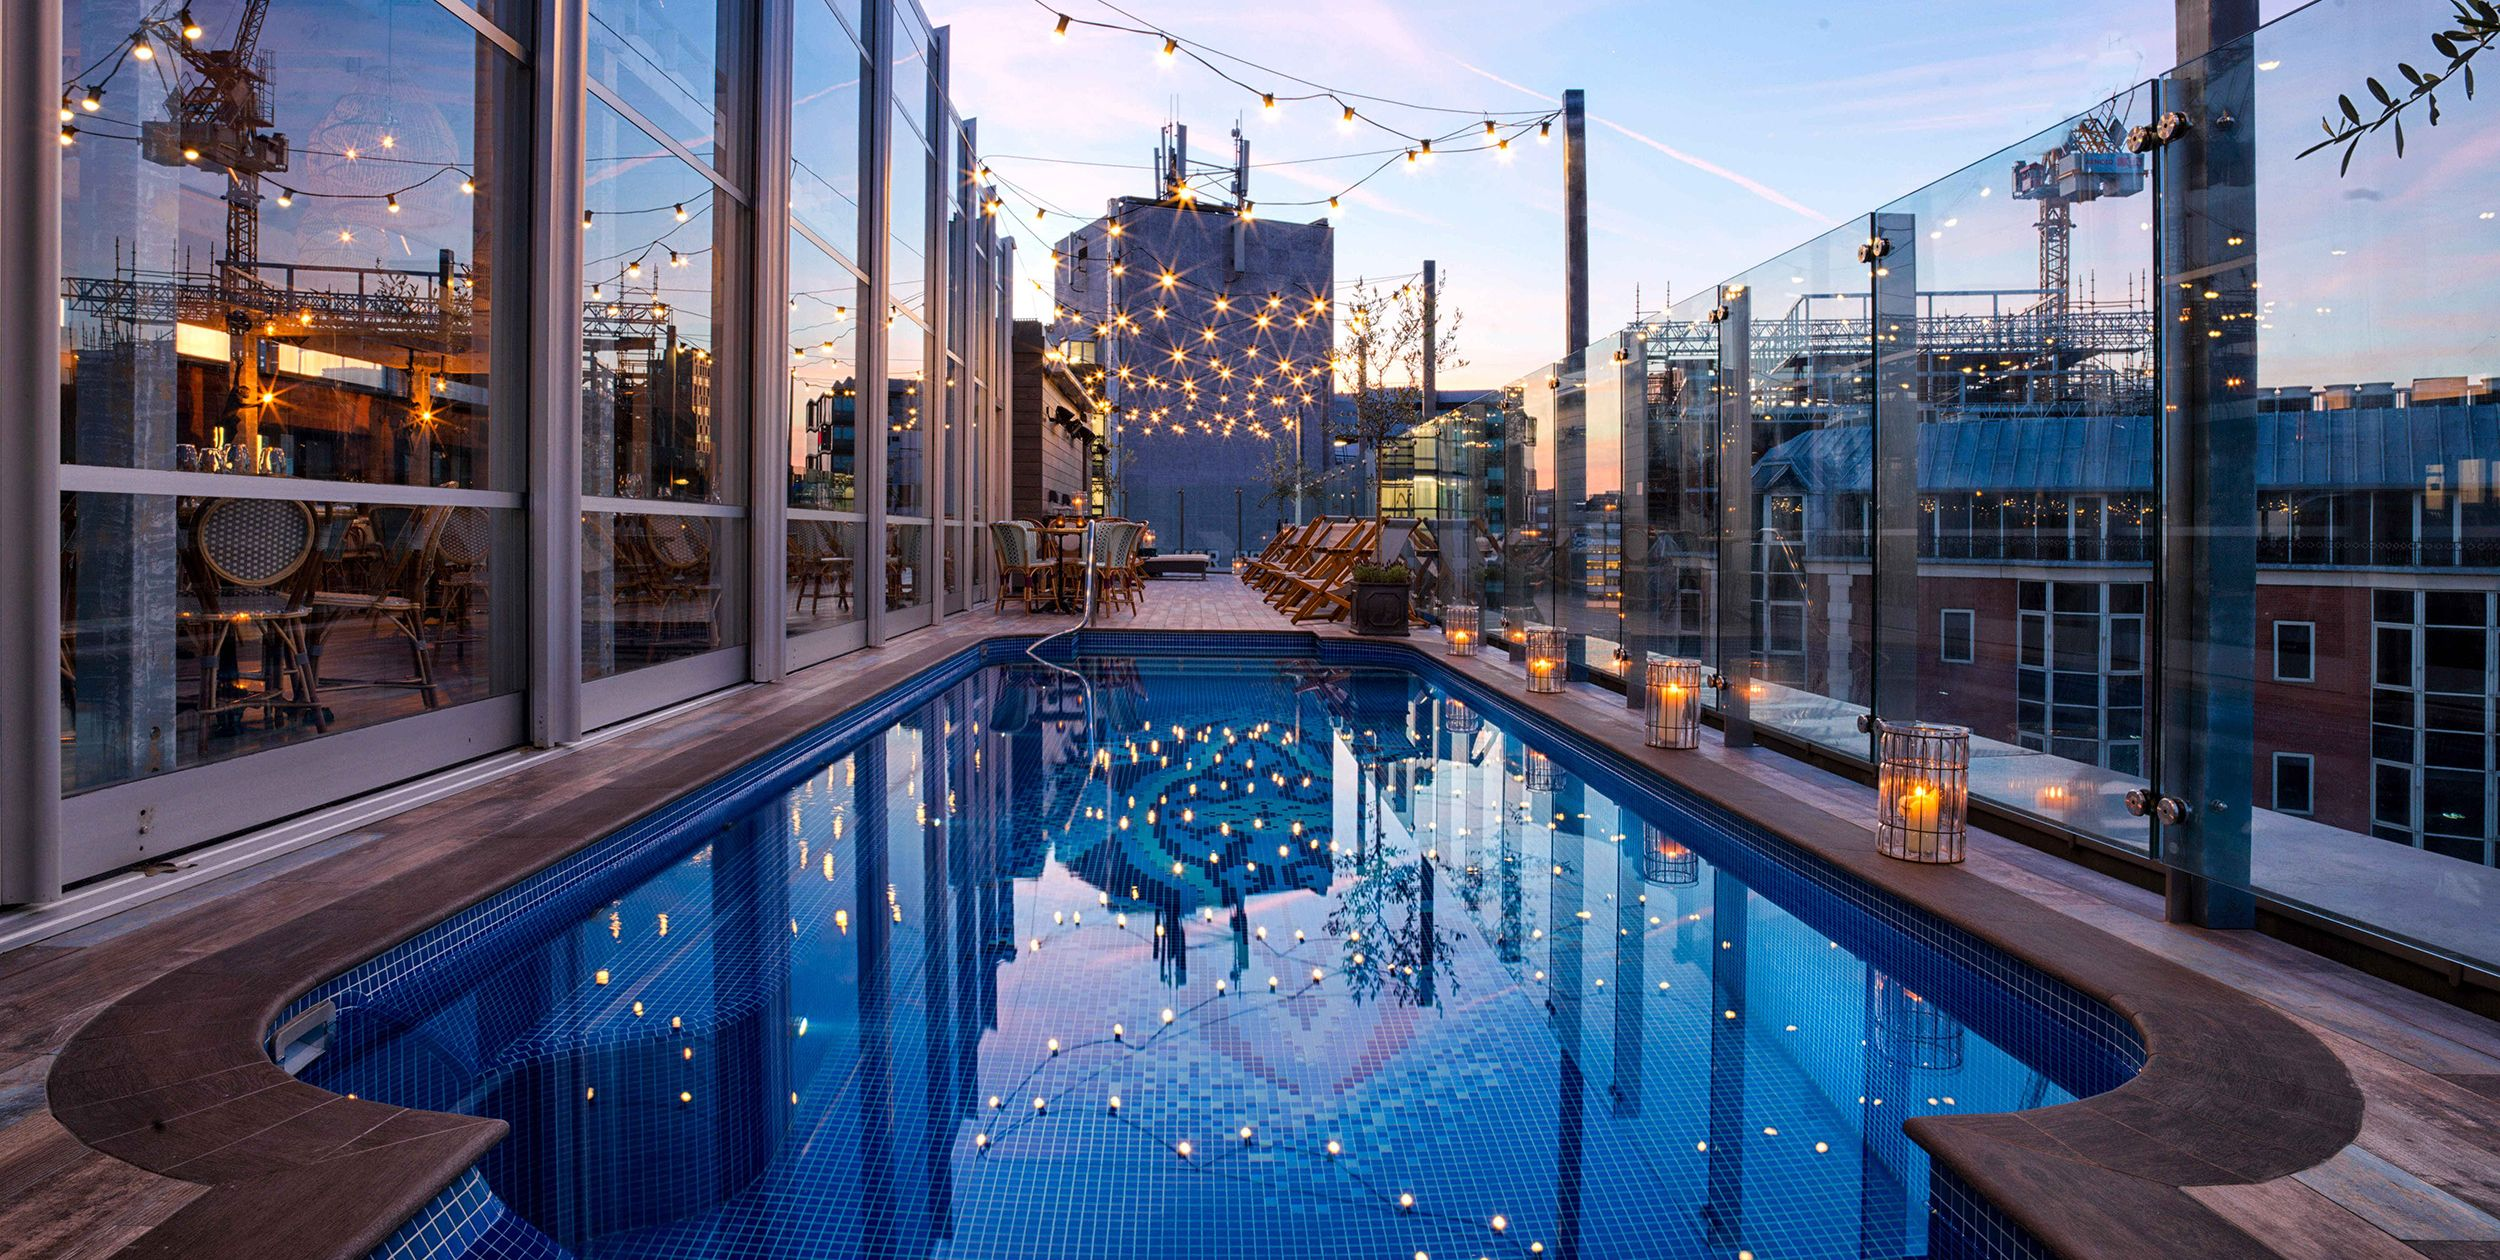 London hotels with pools - The Curtain